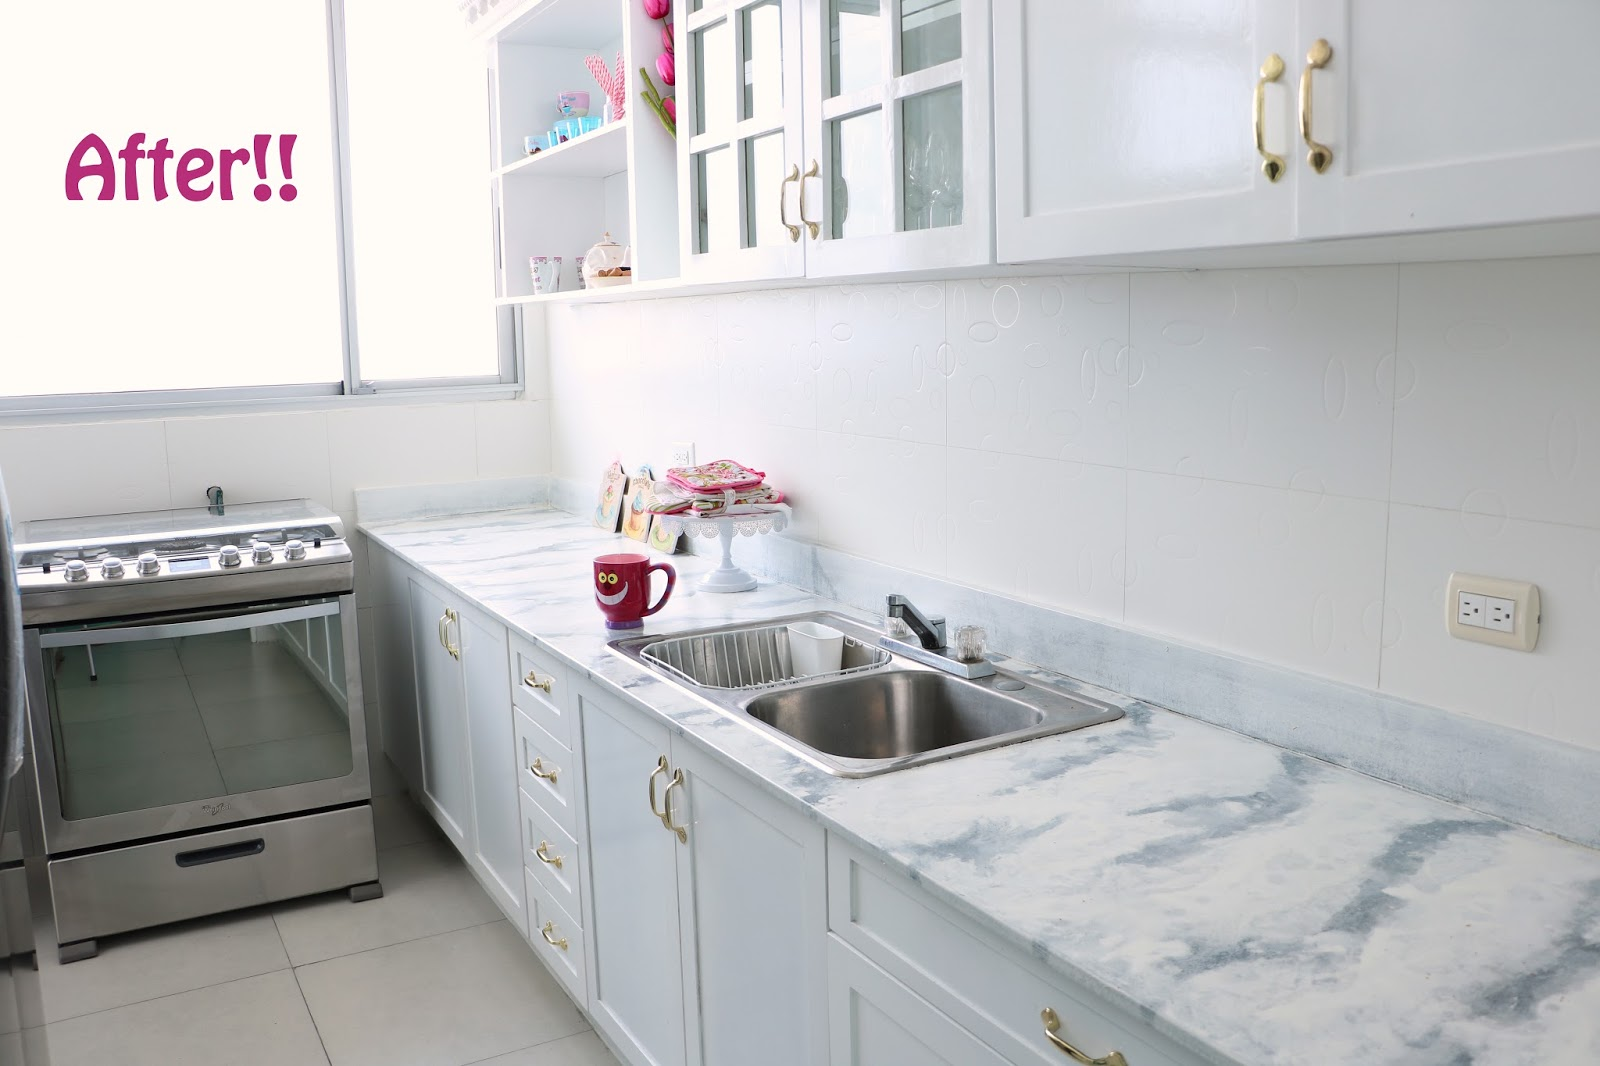 Click through to see the full makeover of this kitchen!